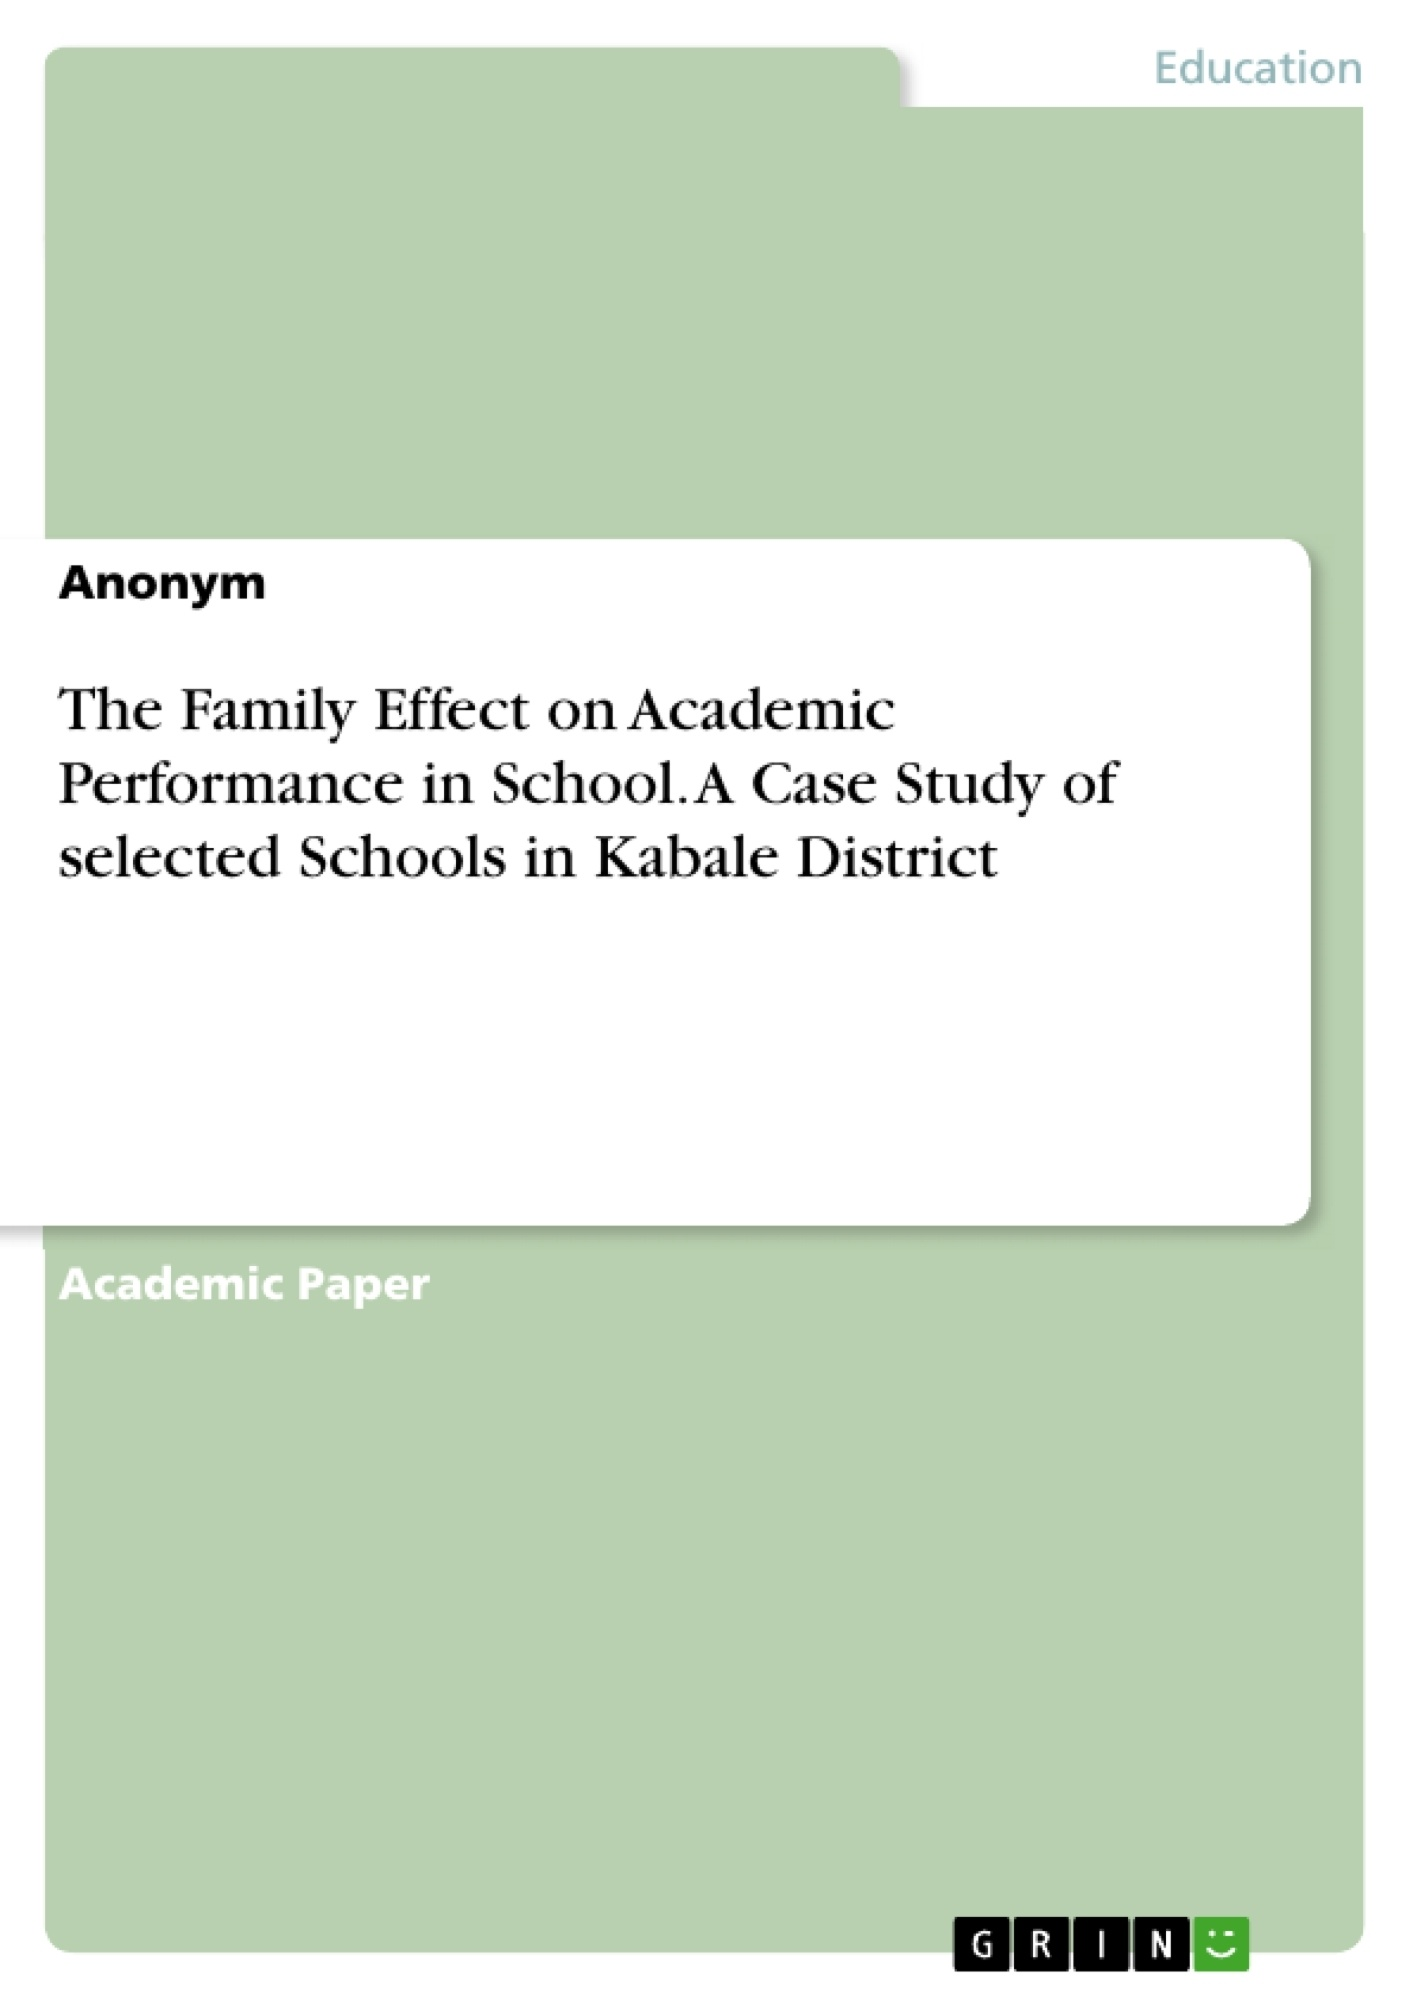 GRIN - The Family Effect on Academic Performance in School  A Case Study of  selected Schools in Kabale District